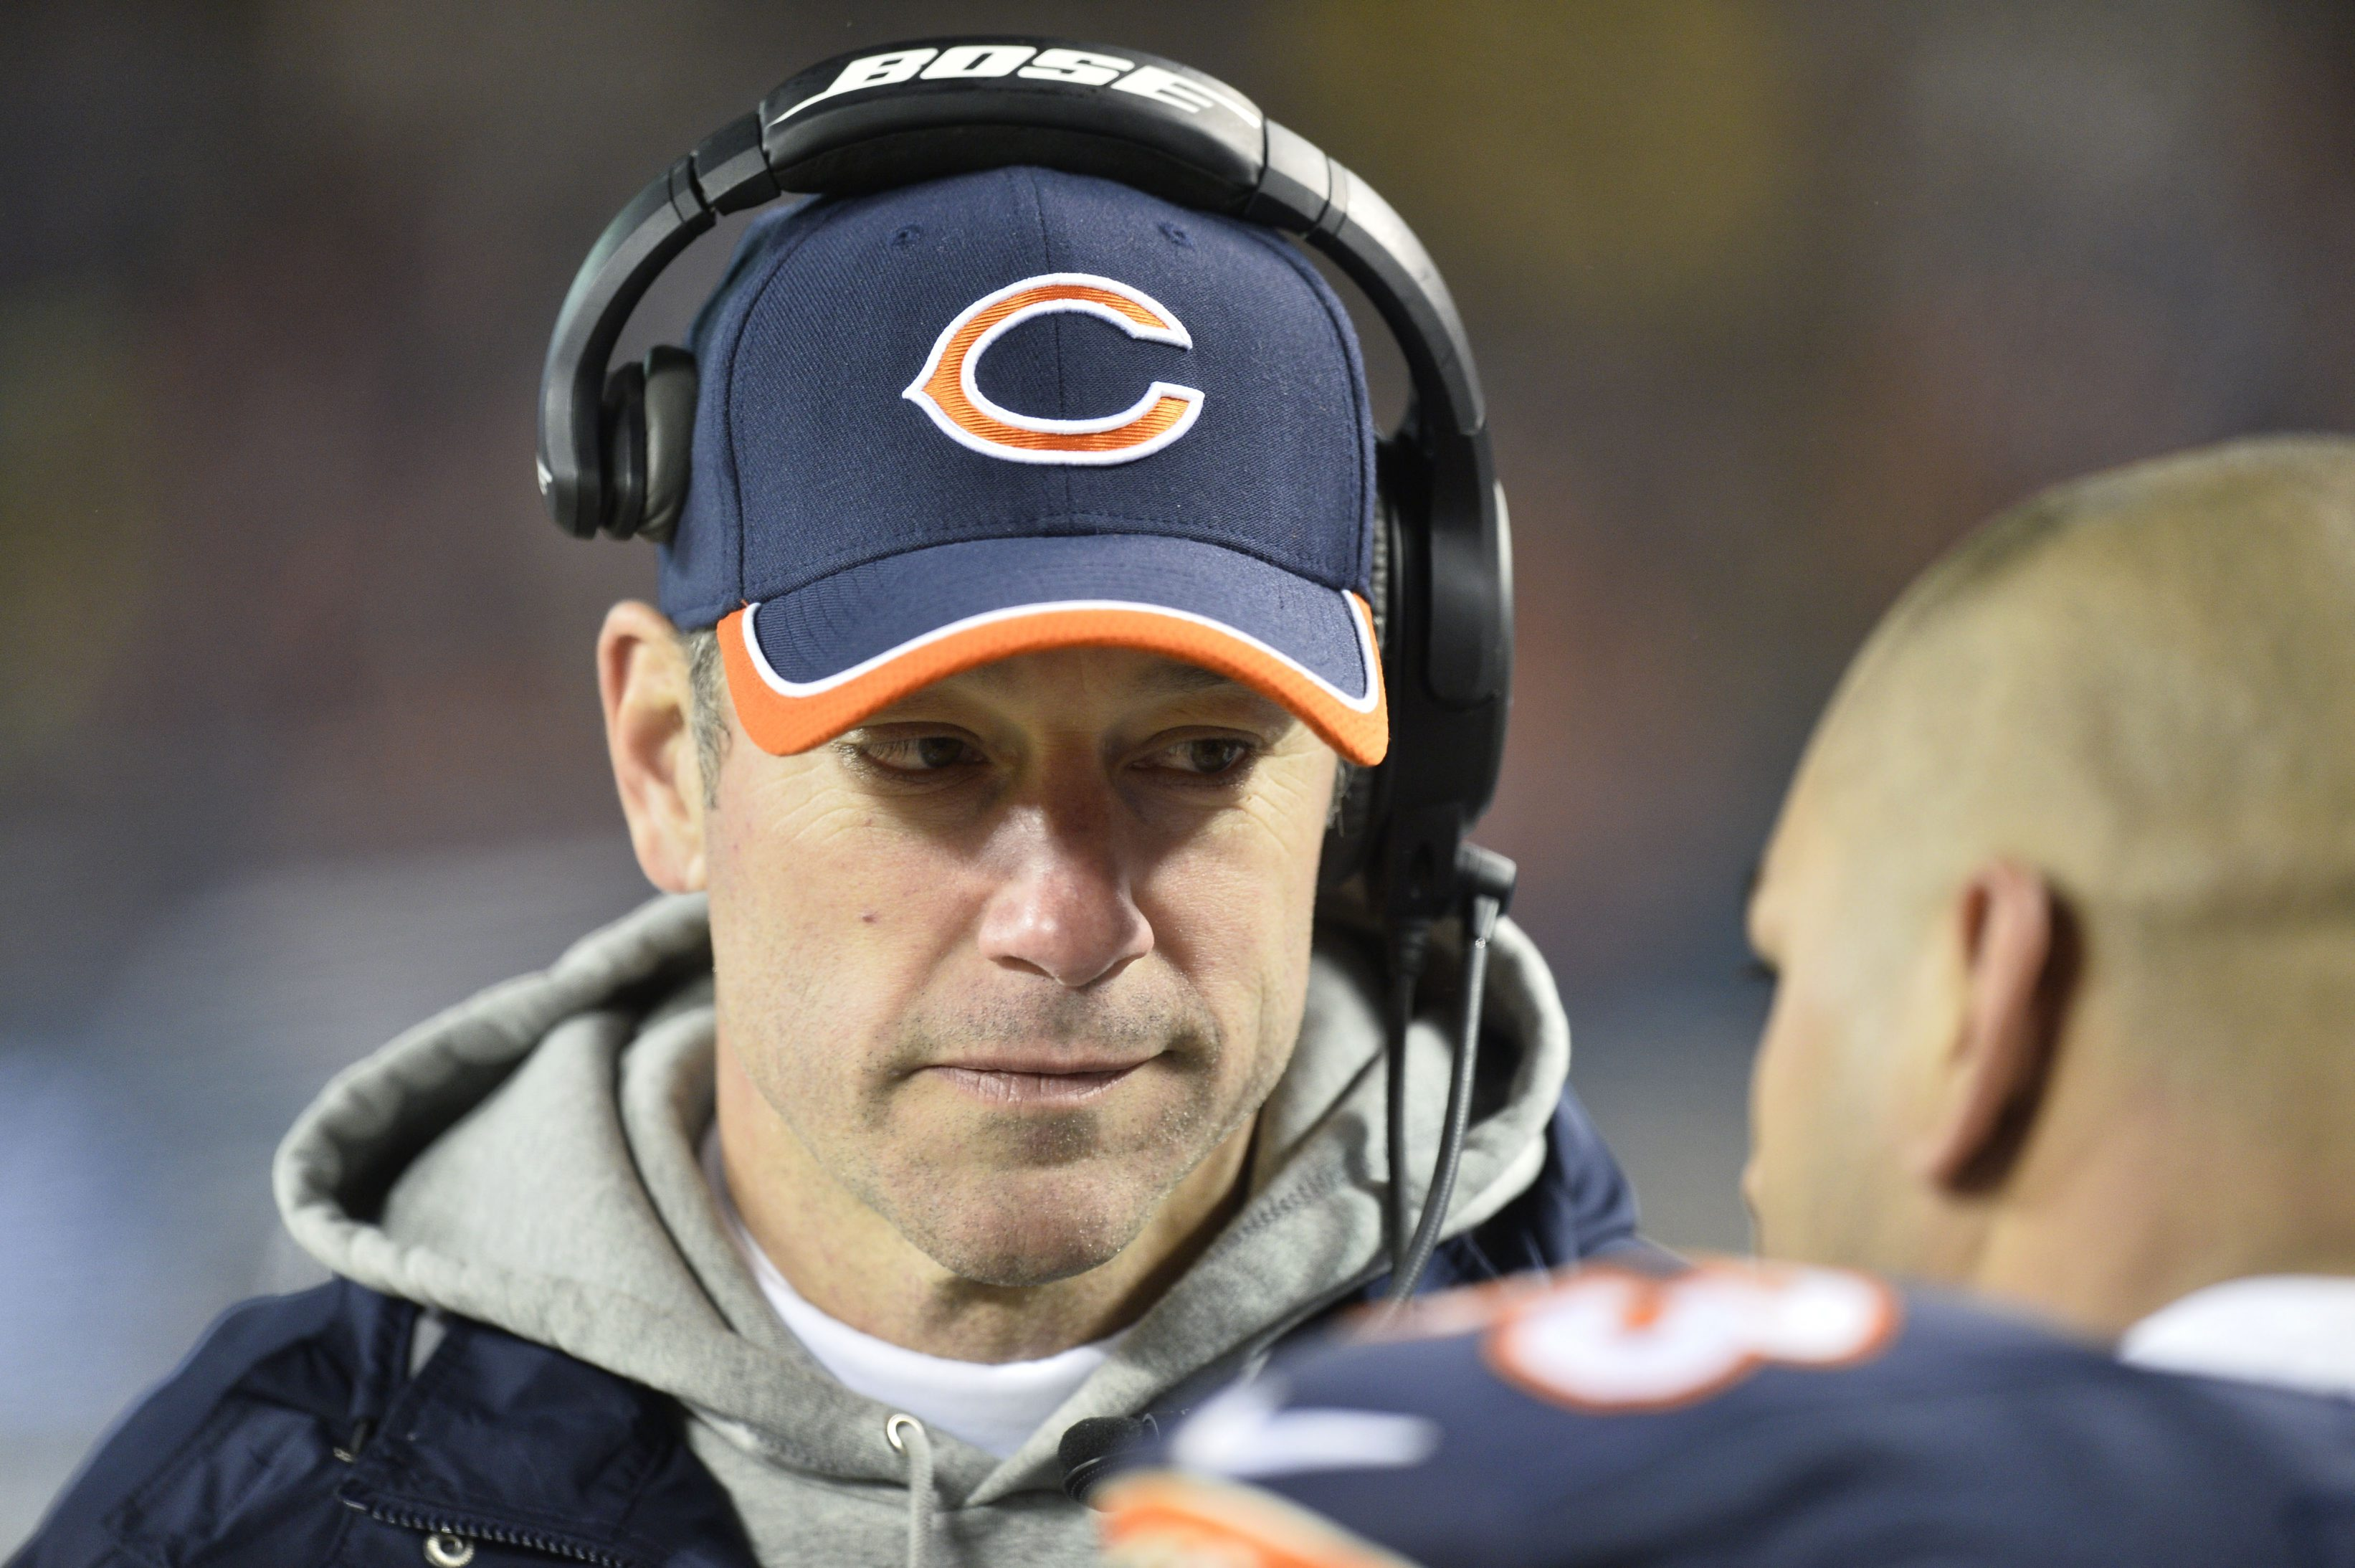 CHICAGO, IL - DECEMBER 15: Offensive coordinator Aaron Kromer of the Chicago Bears talks with a player on the sideline during the third quarter at Soldier Field on December 15, 2014 in Chicago, Illinois. The Saints defeated the Bears 31-15. (Photo by Brian Kersey/Getty Images)